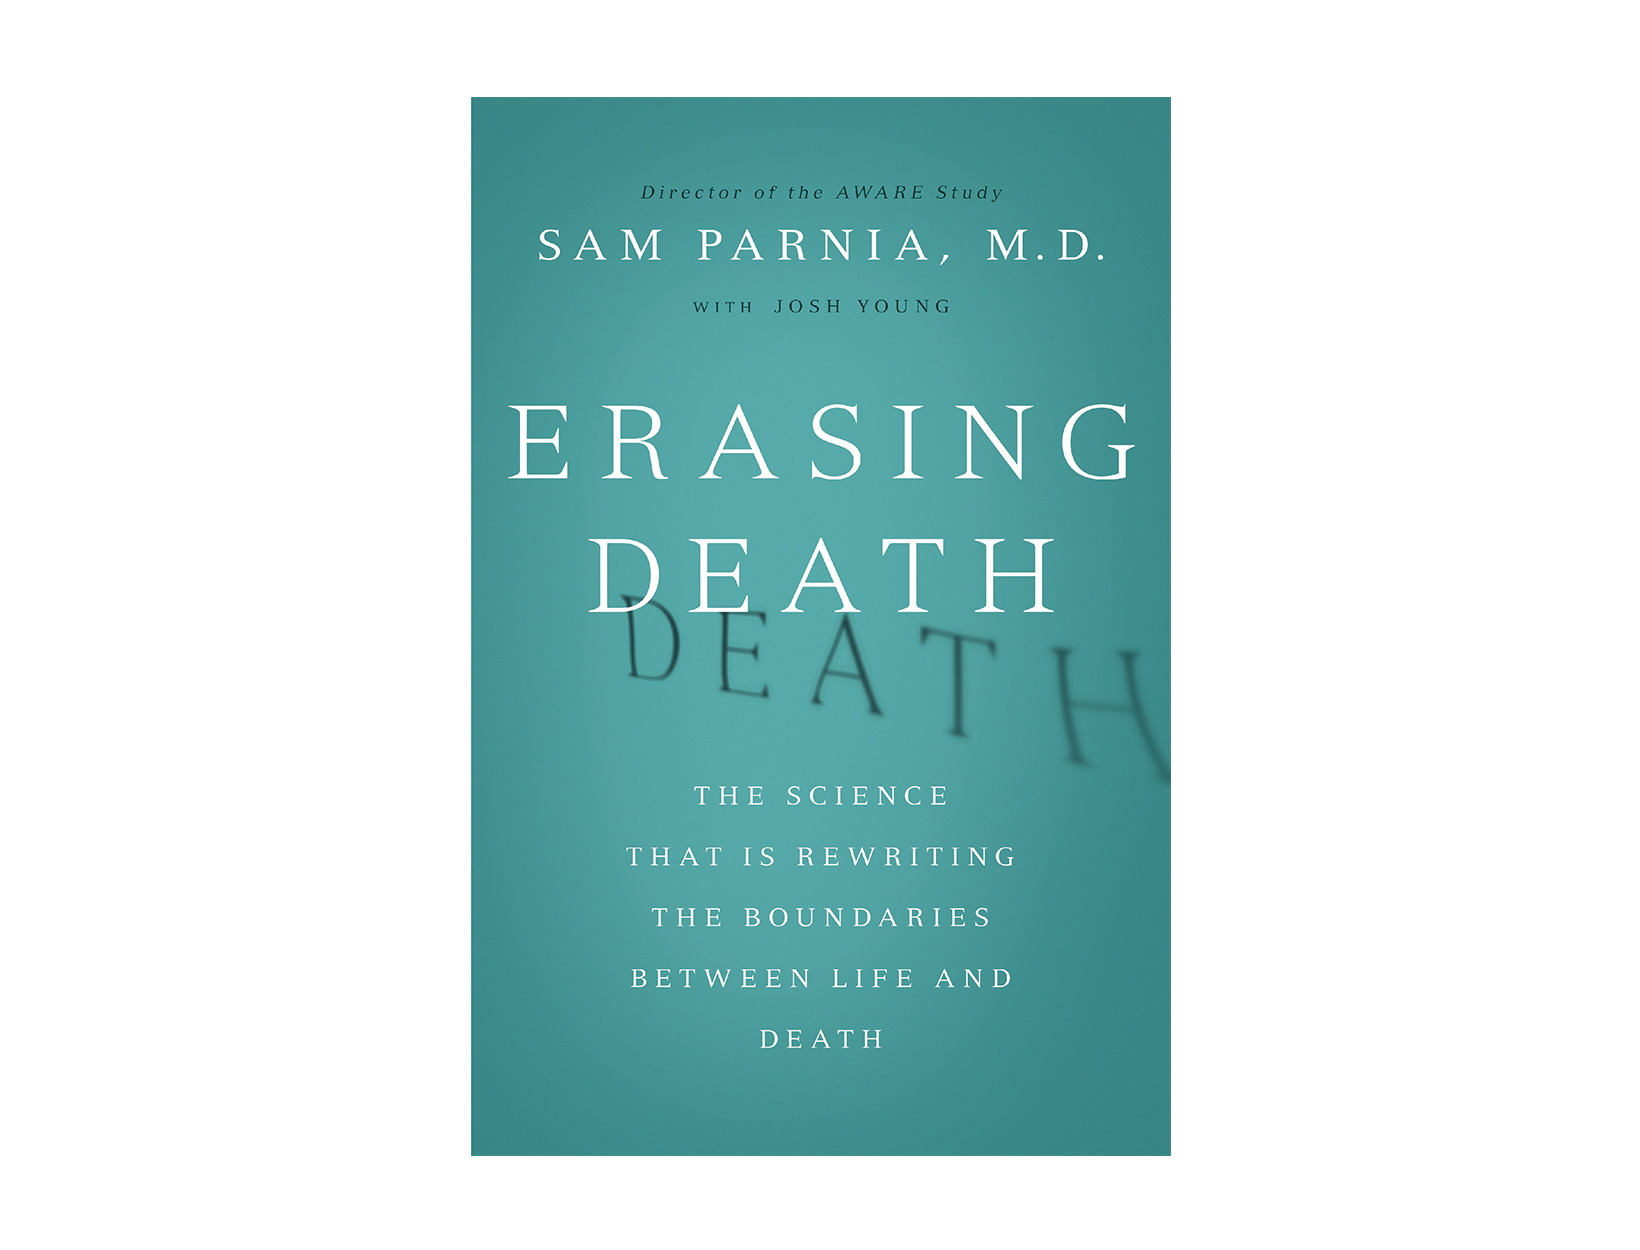 Erasing Death: The Science That is Rewriting the Boundaries Between Life and Death by Sam Parnia, M.D.